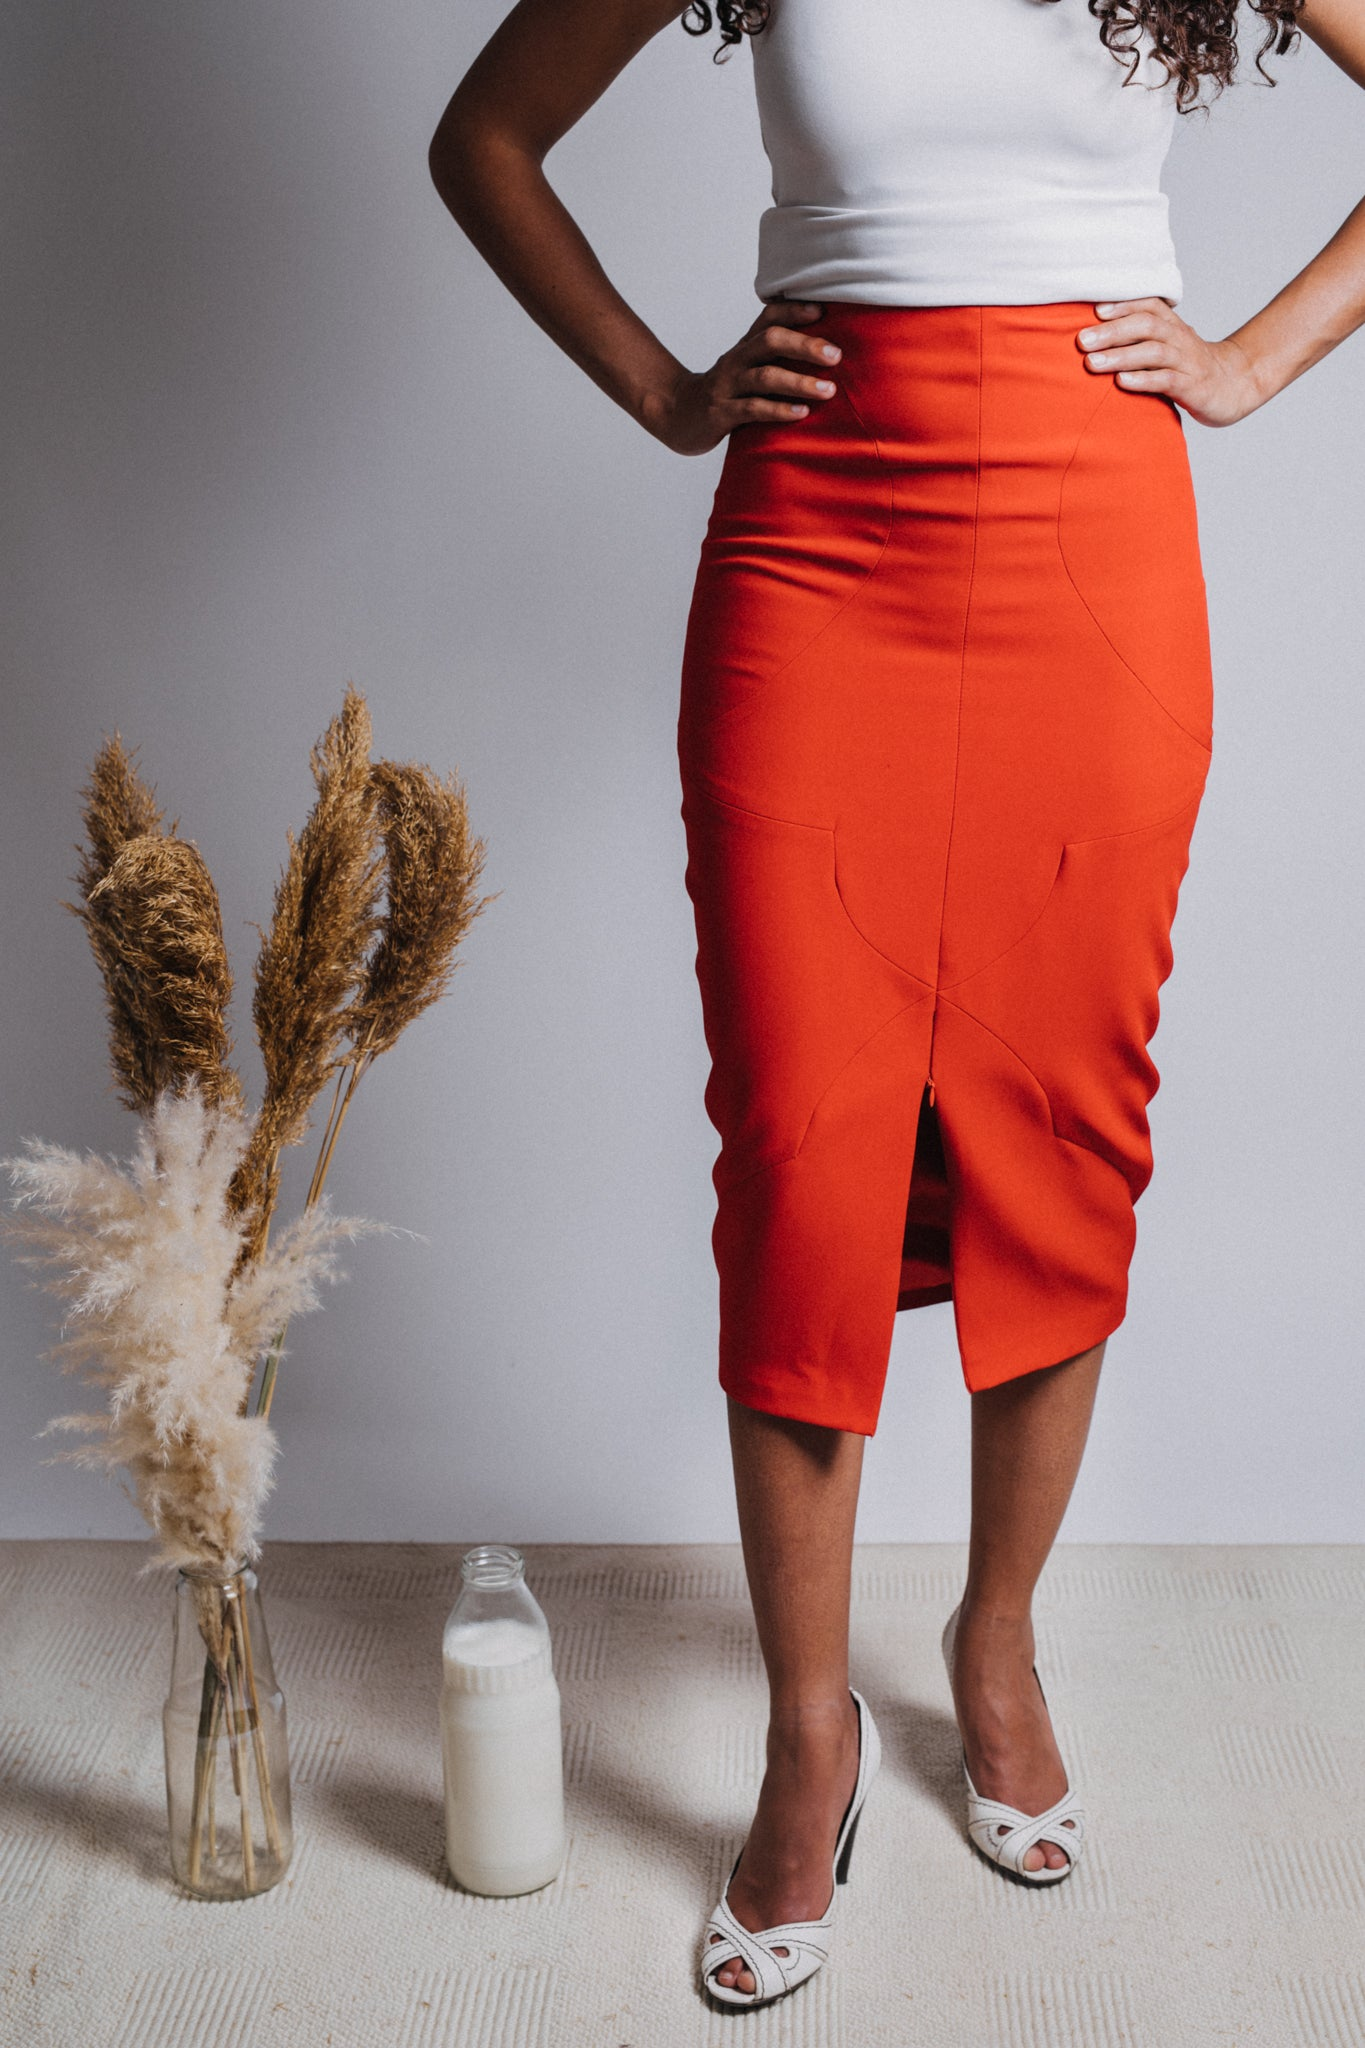 The Arabesque Pencil Skirt